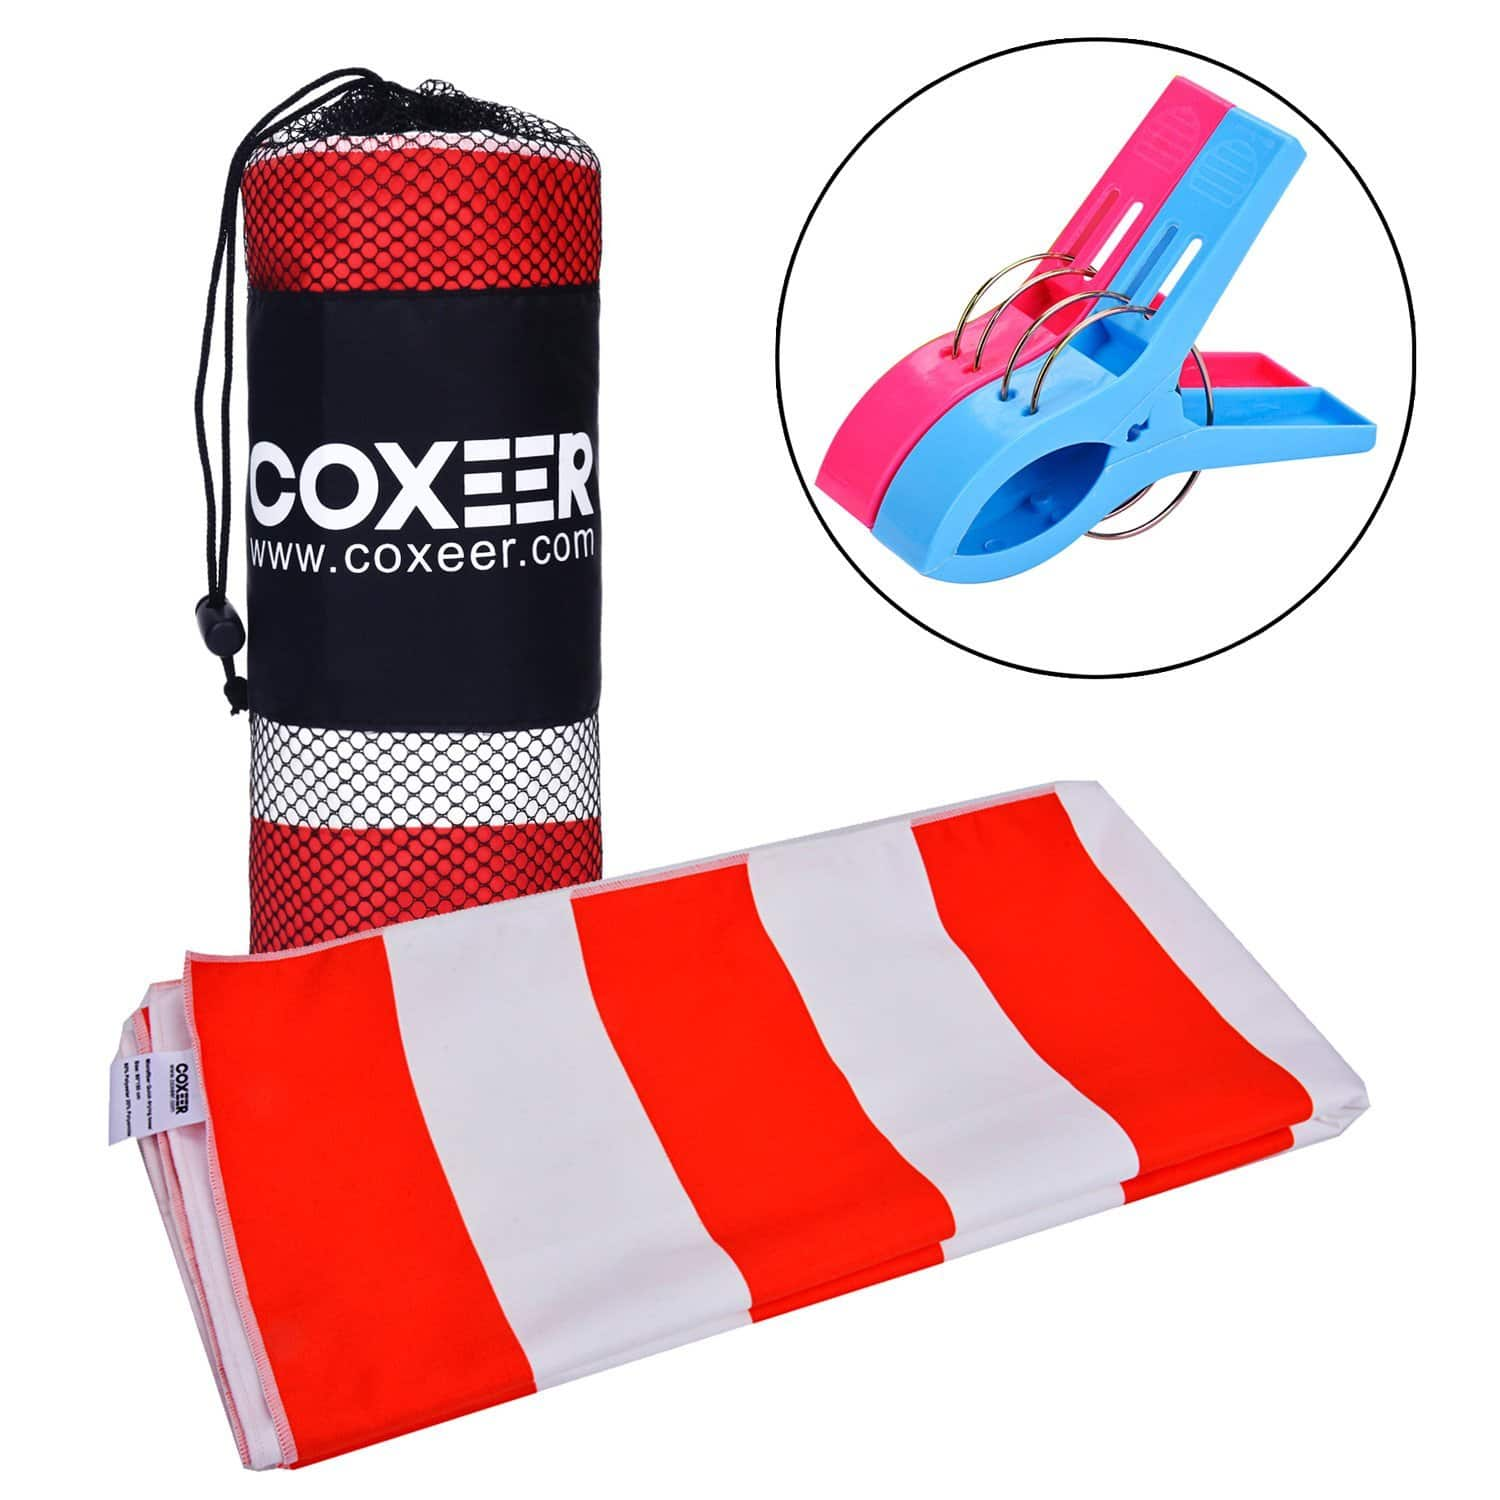 Microfiber Striped Pool Towel Large Beach Towel W/ 2 Clips for $5.98 AC+FS With Prime @ Amazon